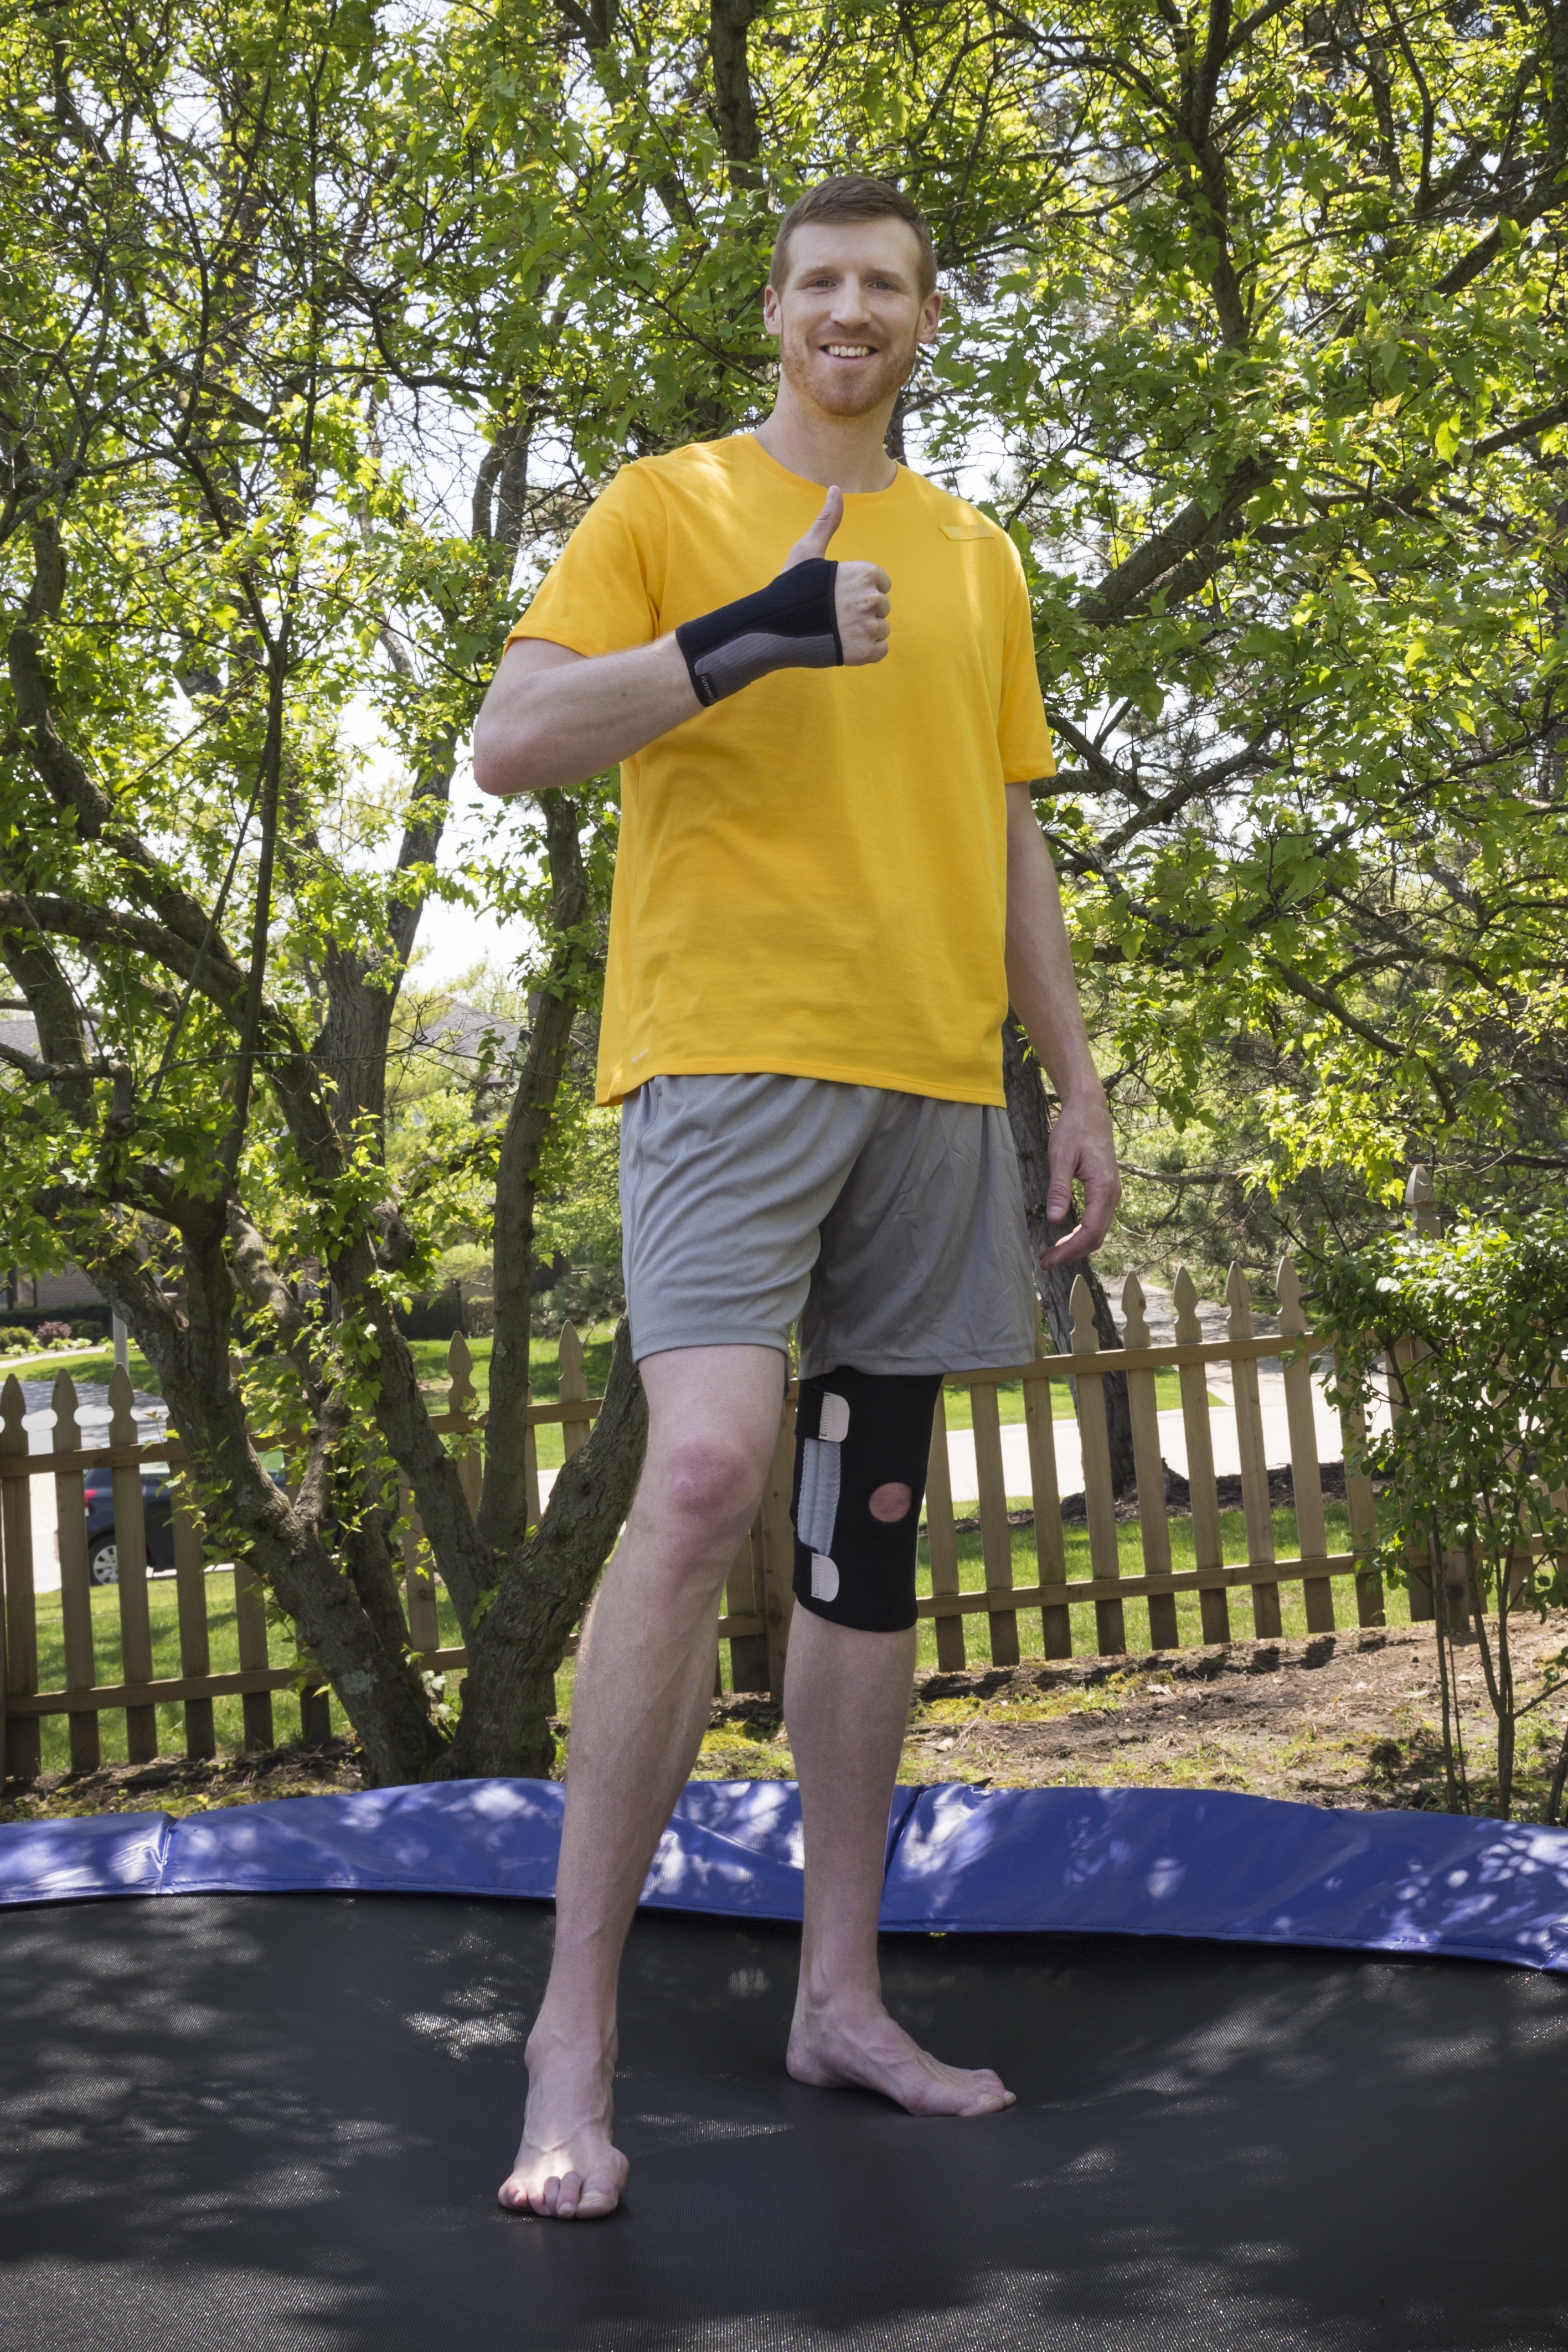 """Retired professional basketball player Matt Bonner highlights his quest to stay fit after retirement as he explores out-of-the-box fitness routines in the new FUTURO Brand """"Brace for Adventure"""" campaign (Photo: Business Wire)"""